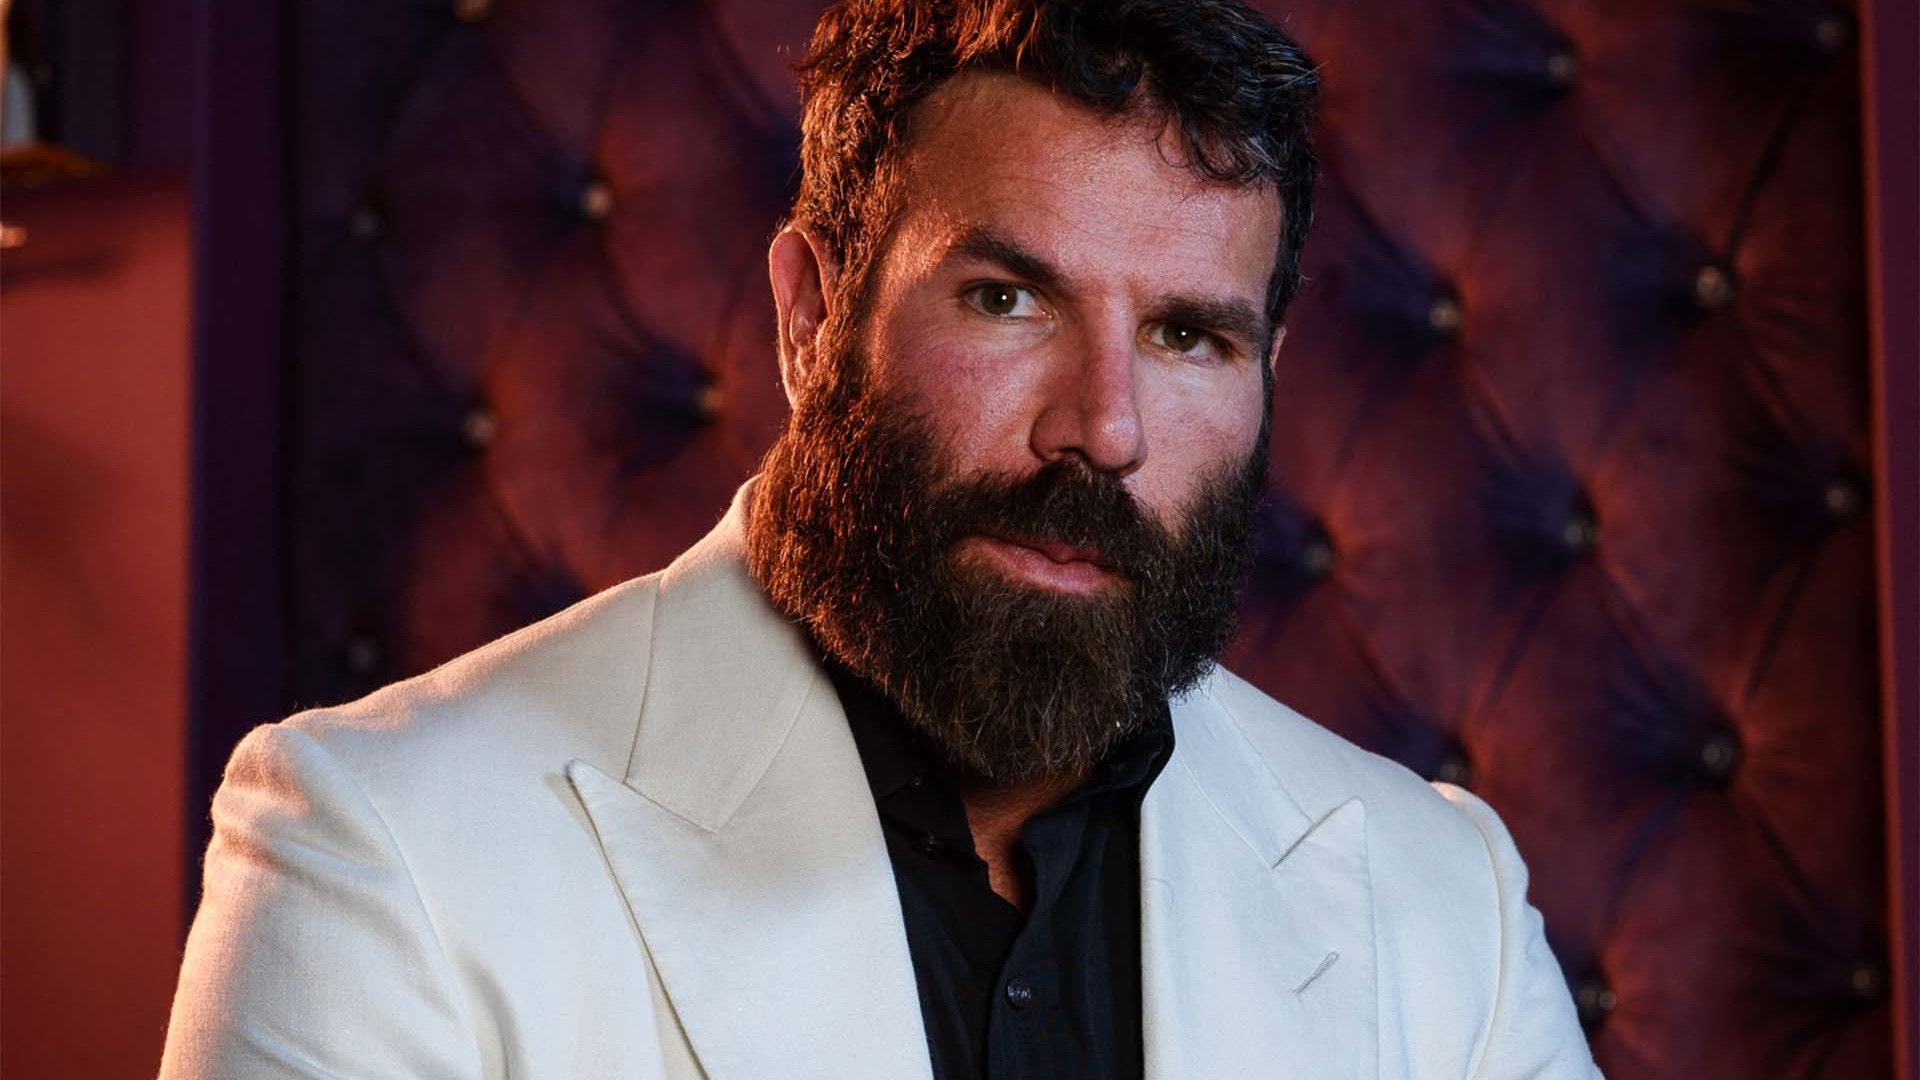 dan bilzerian talks poker instagram and girls in this exclusive interview square mile. Black Bedroom Furniture Sets. Home Design Ideas